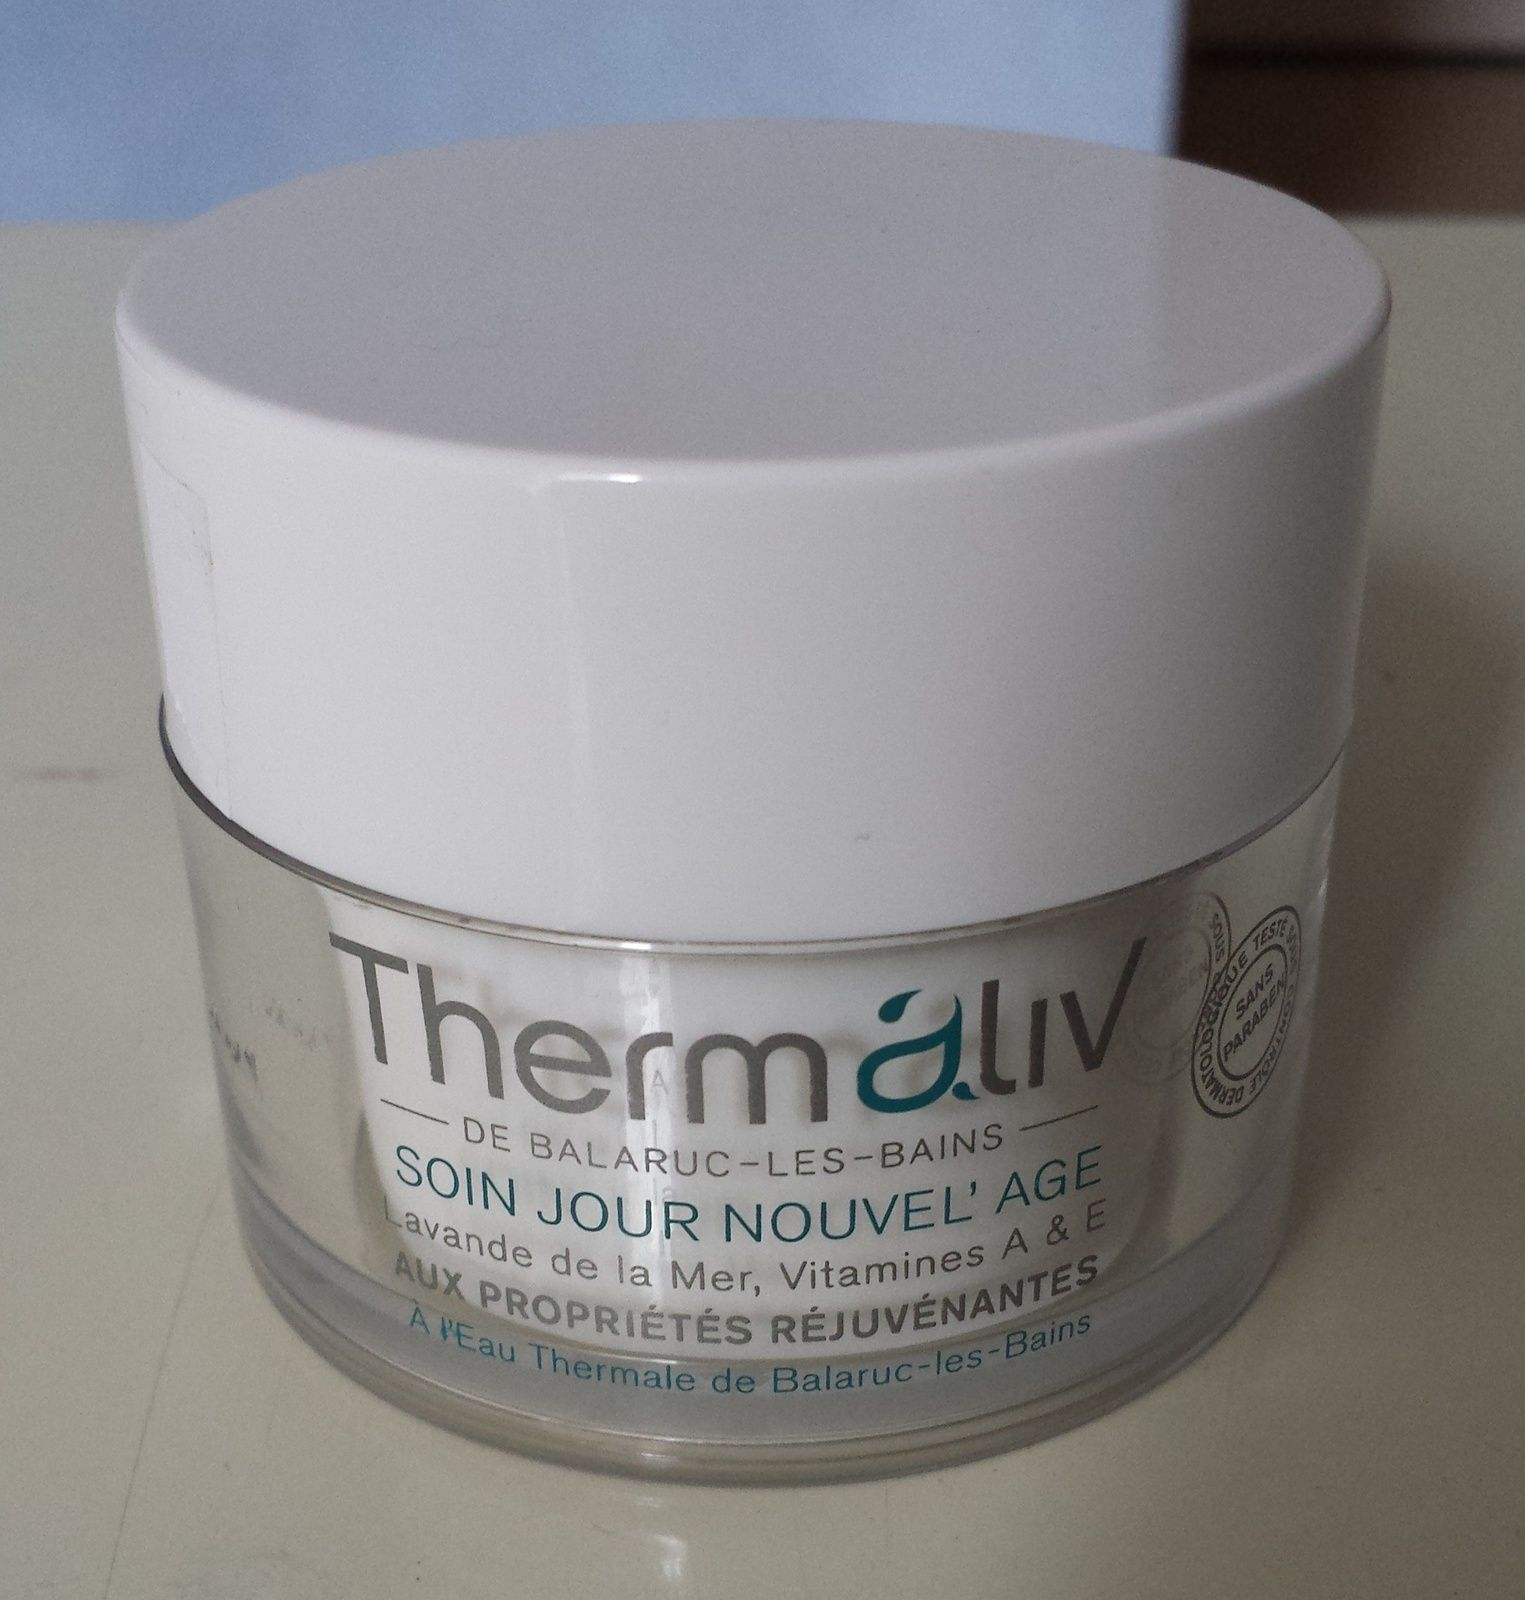 Thermaliv